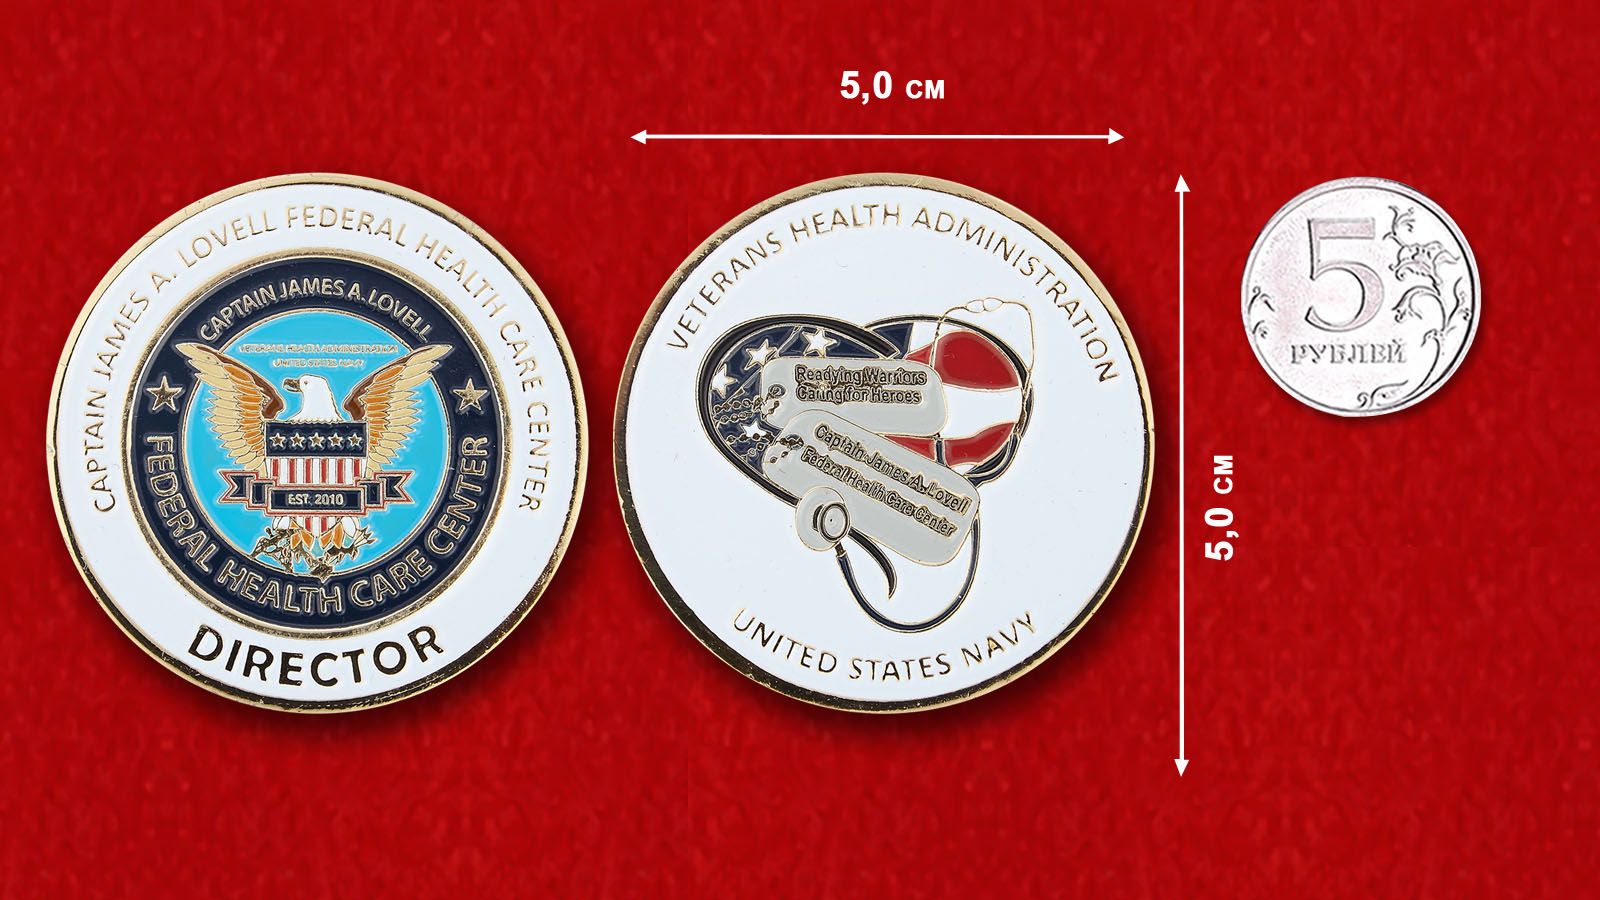 "Challenge Coin ""Captain James A. Lovell Federal Health Care Center"" - comparative size"